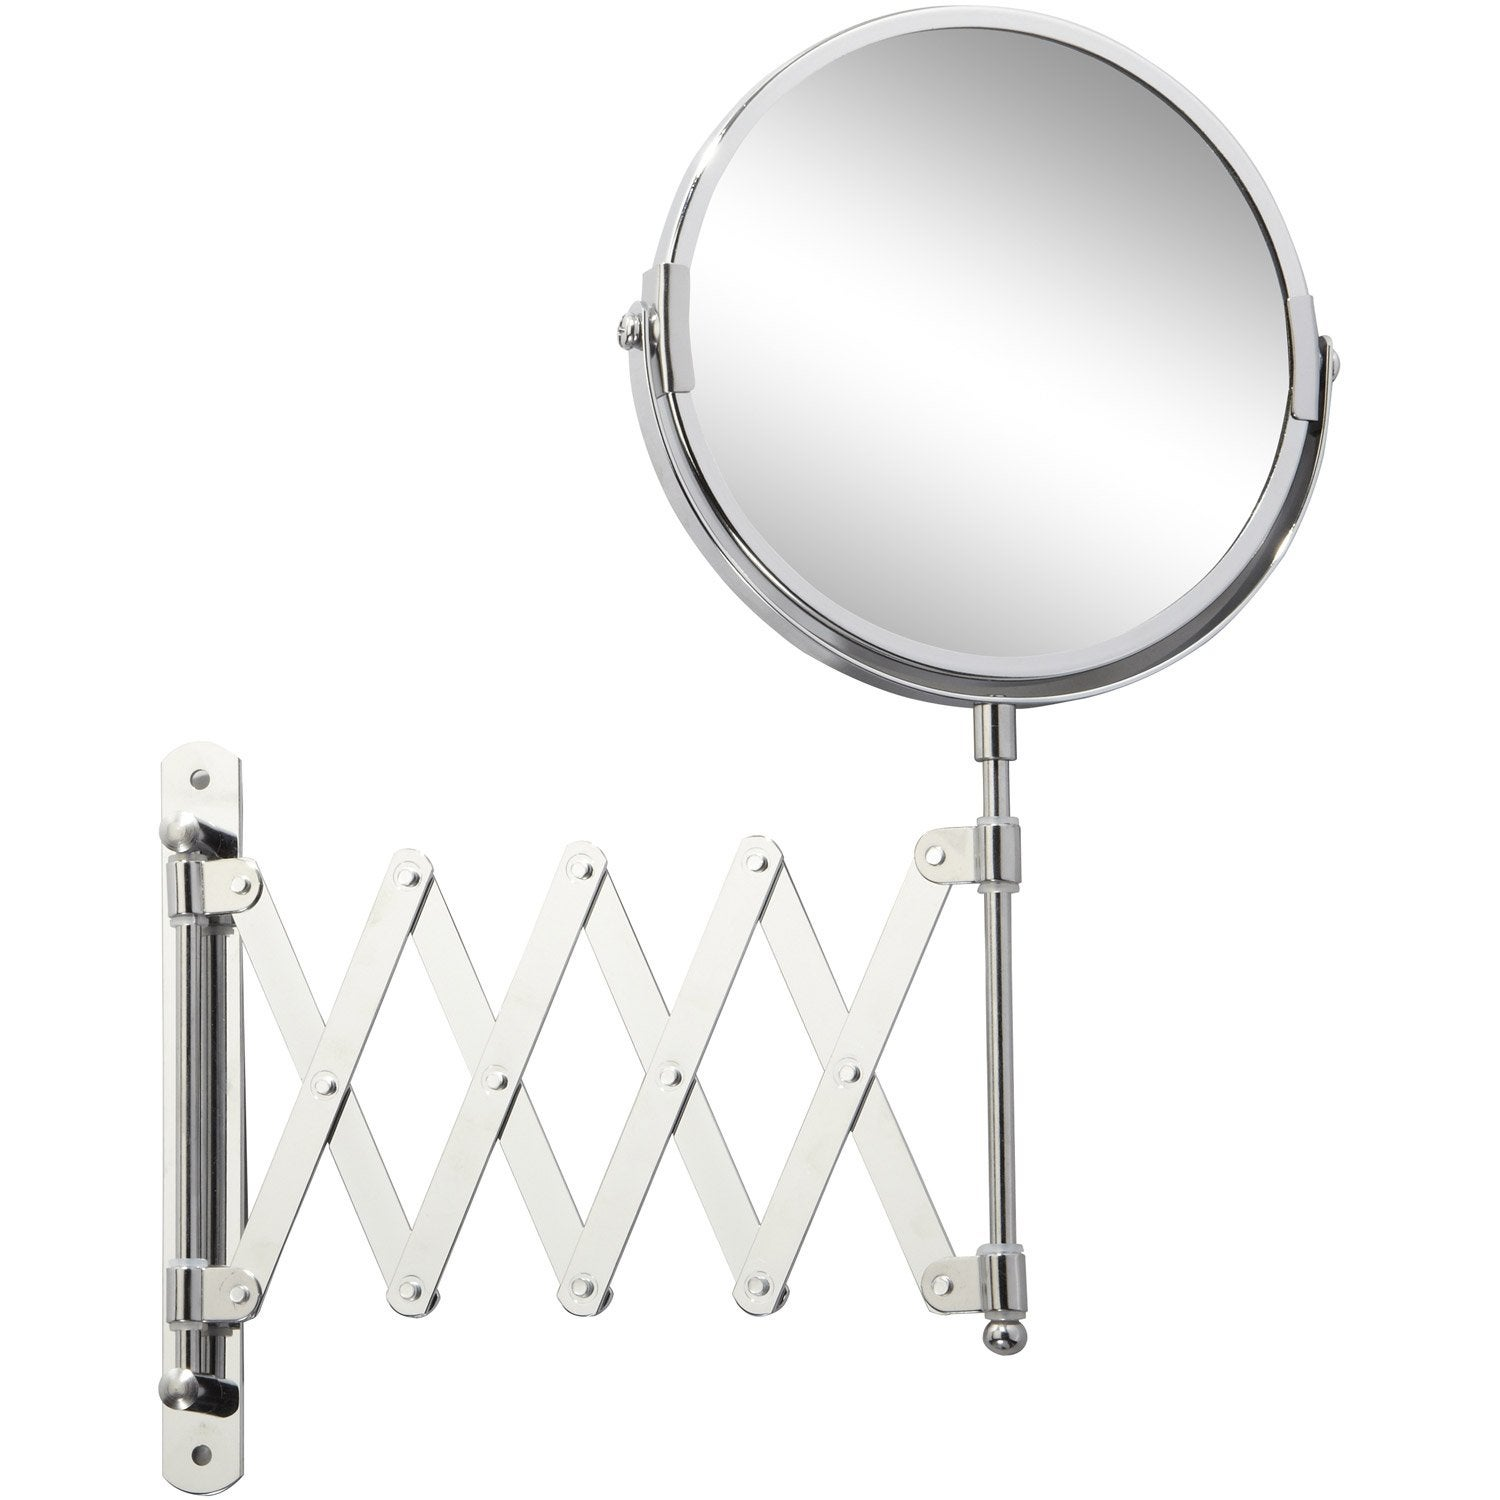 Miroir Grossissant X 2 Rond Fixer X X P 1 8 Cm Beauty Extensible Leroy Merlin